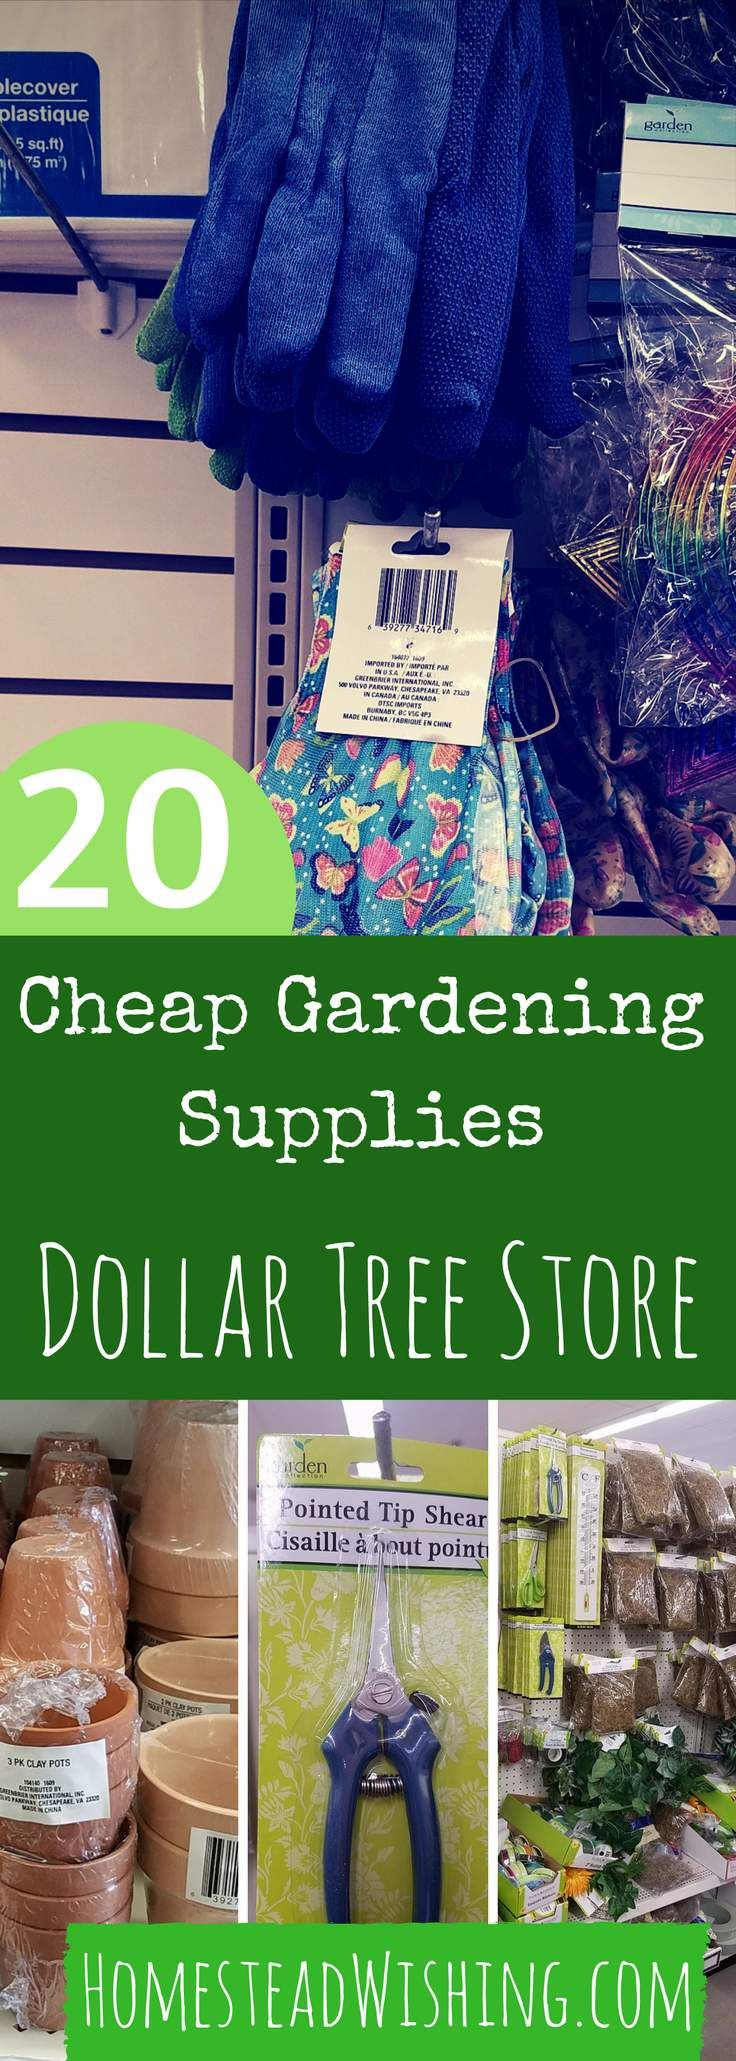 20 Dollar Tree Gardening Supplies - Cheap Gardening Supplies - Garden For Cheap - Gardening Tricks - Homestead WIshing, Author Kristi Wheeler | http://homesteadwishing.com/dollar-tree-gardening-supplies/ ‎ | dollr-tree-gardening-supplies, cheap-gardening-supplies, - gardening-for-cheap |